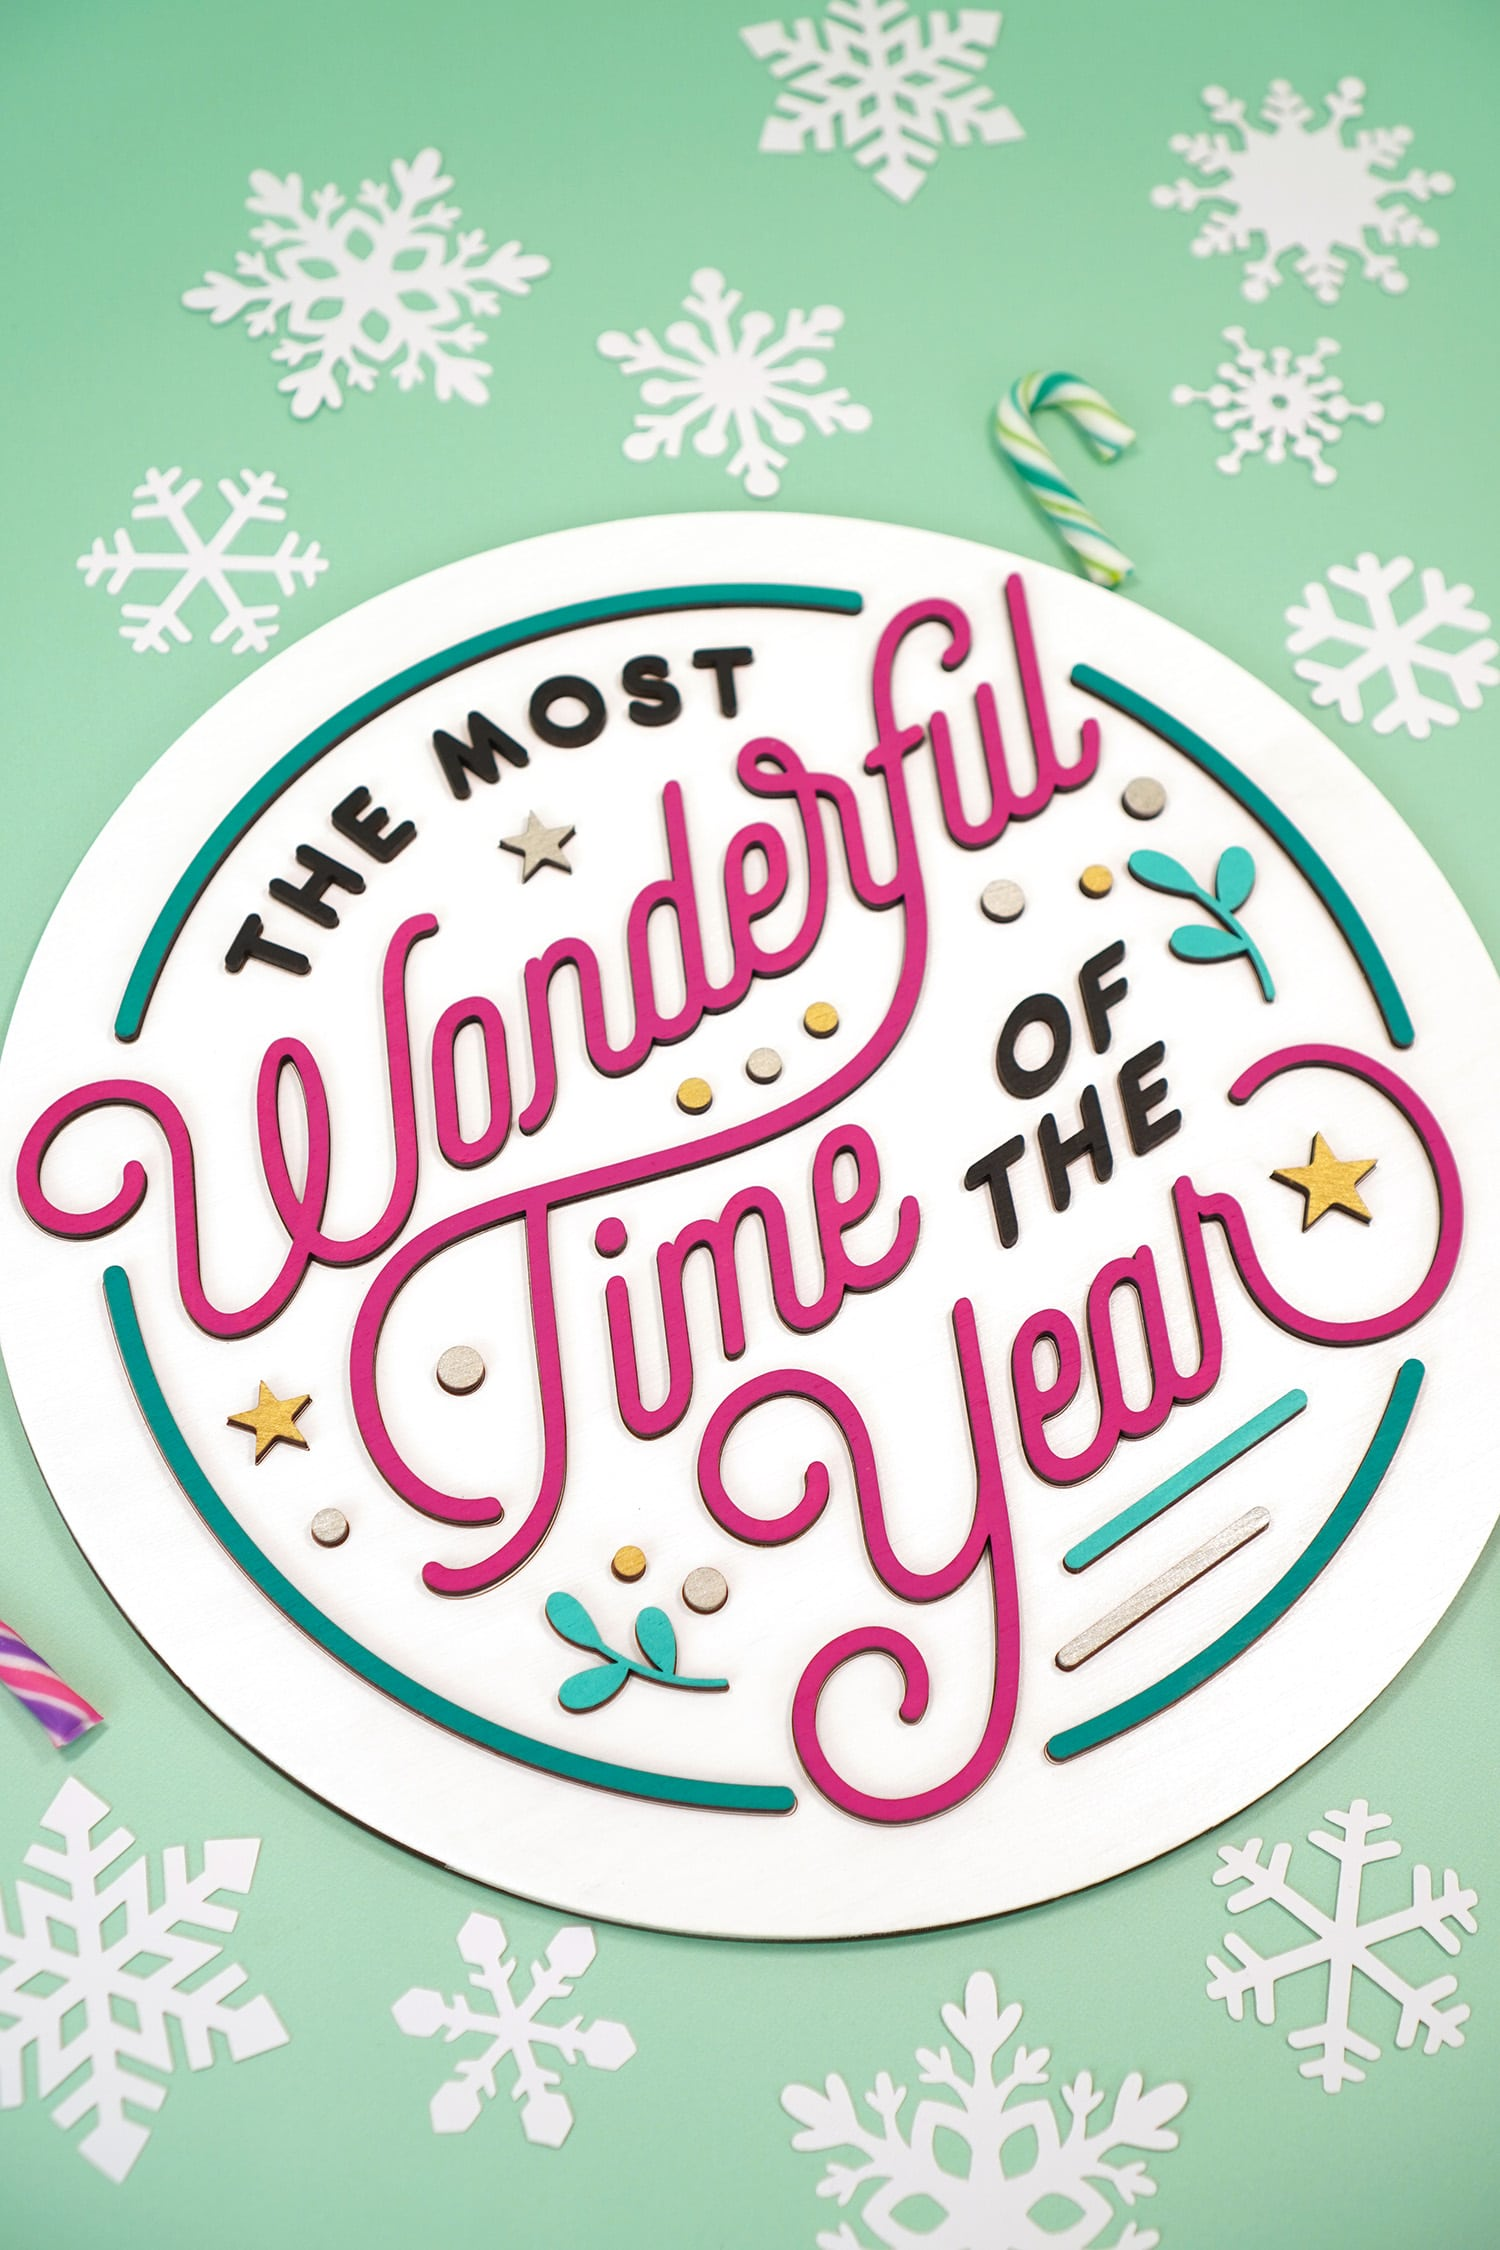 """""""The Most Wonderful Time of the Year"""" Laser Cut Wood Sign on mint green background with paper snowflakes and candy canes"""